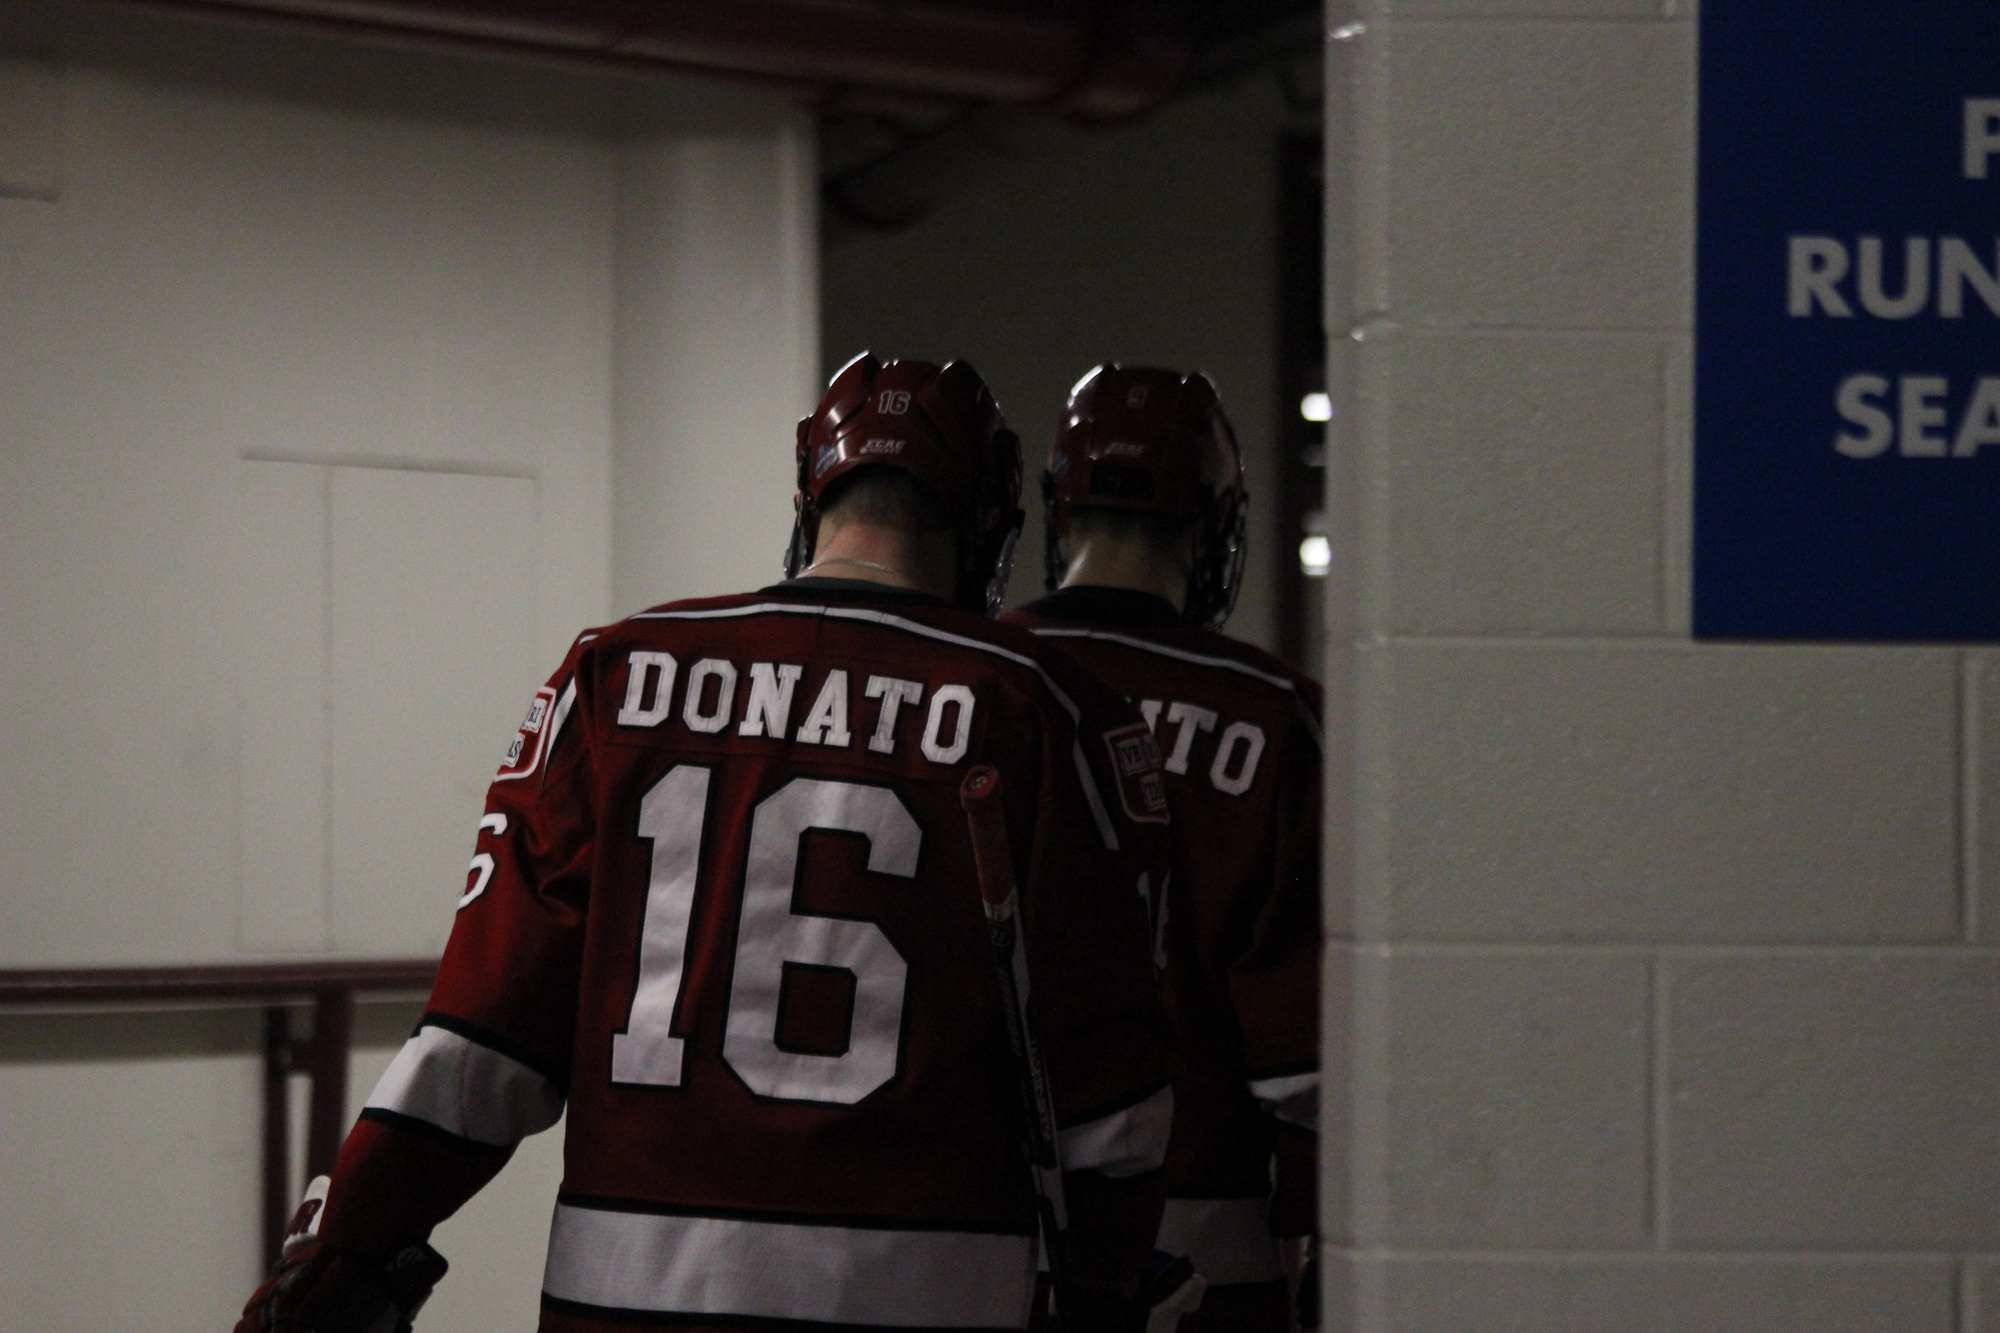 Ryan Donato walks down the tunnels of the United Center in Chicago after the 2-1 loss to Minnesota-Duluth in the Frozen Four. A sophomore at the time, Donato used the defeat as motivation to improve over the summer and come out of the gates strong in 2017-2018.